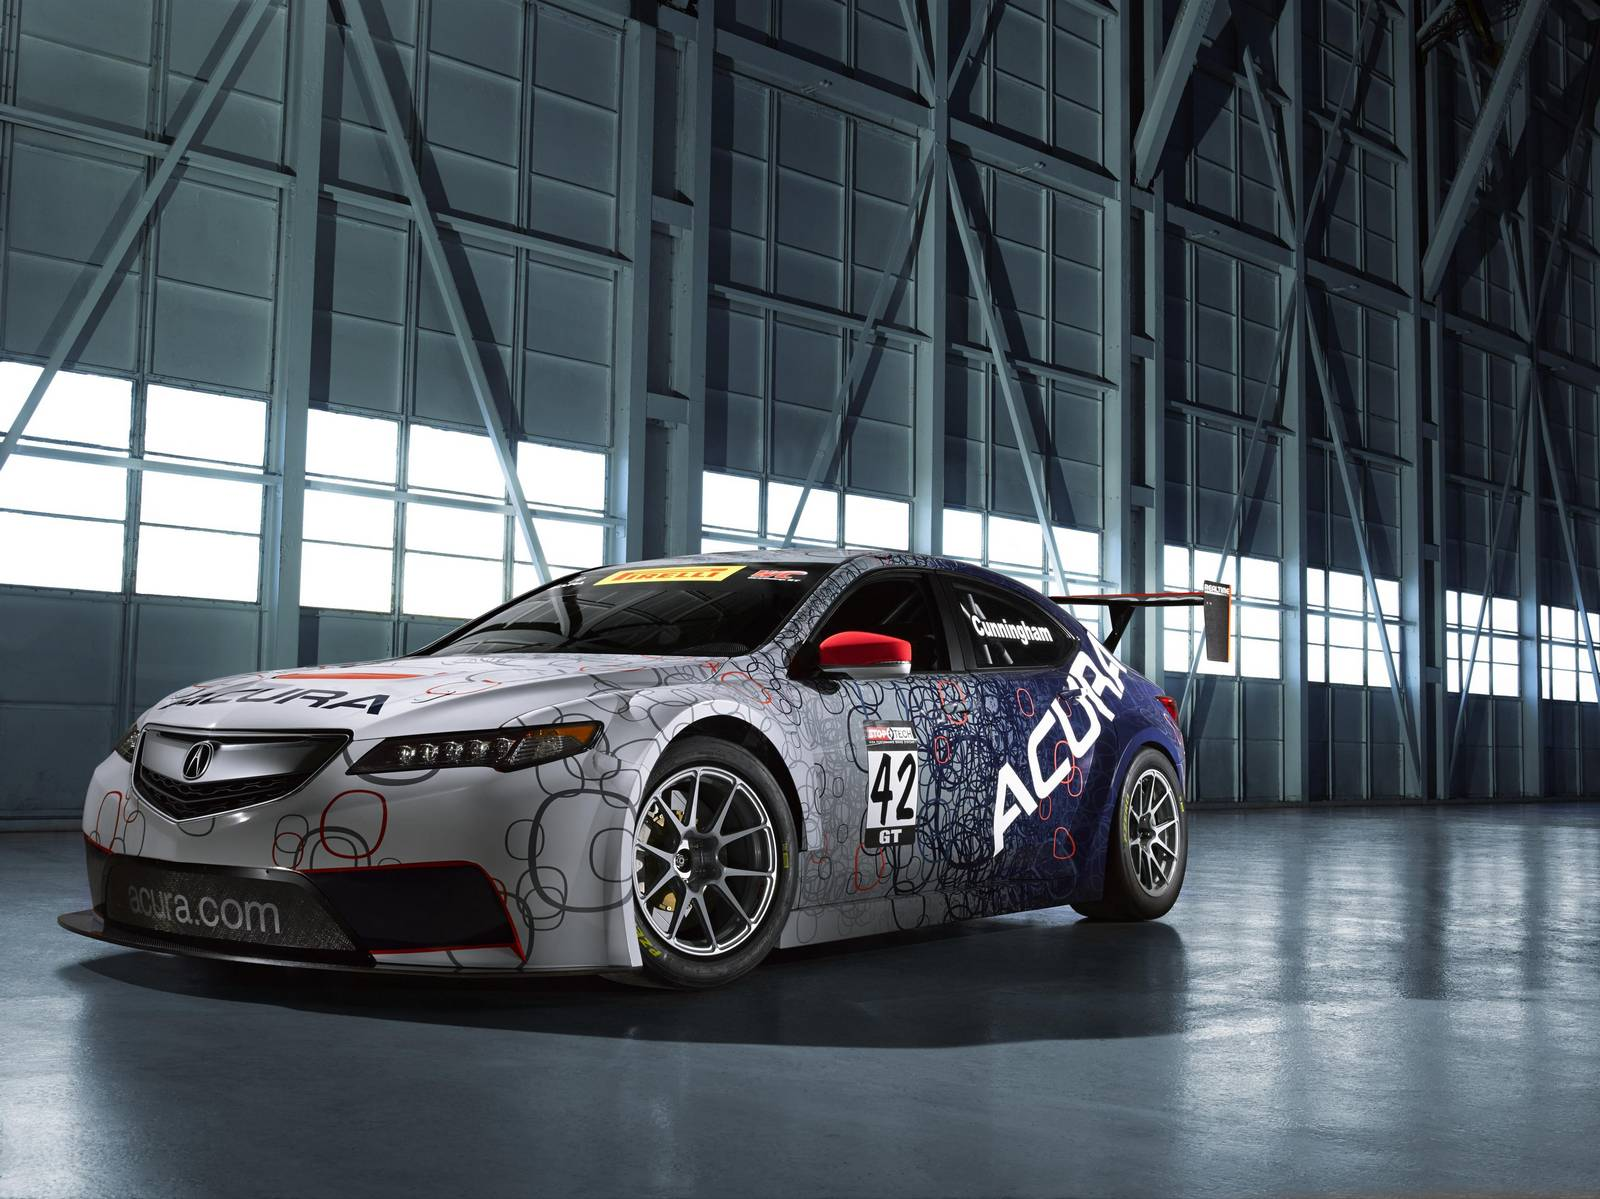 official 2015 acura tlx gt race car gtspirit. Black Bedroom Furniture Sets. Home Design Ideas